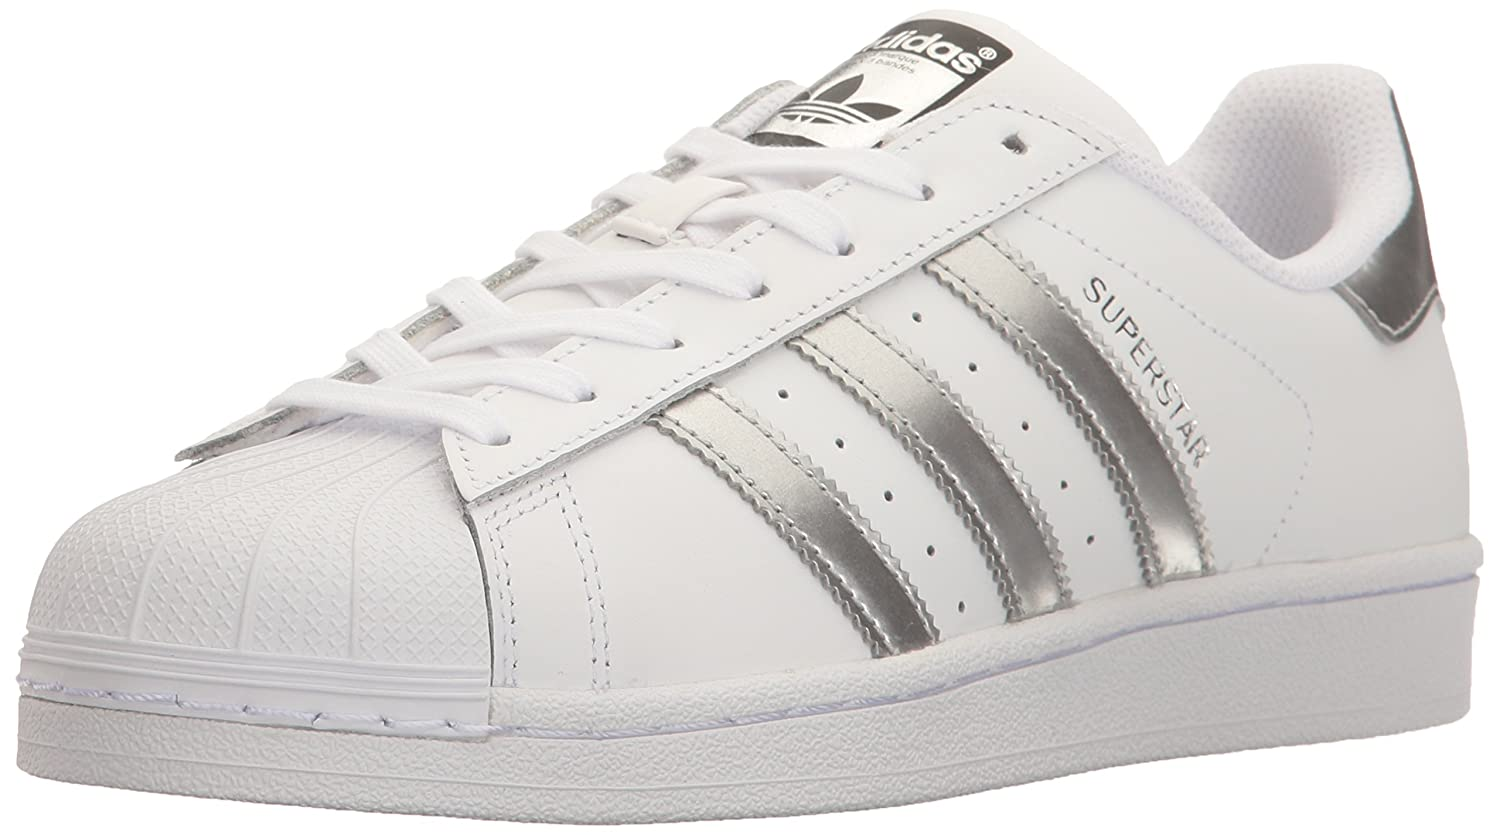 adidas Originals Women's Superstar Fashion Sneakers B01HNEGEAA 9 M US|White/Silver Metallic/Black